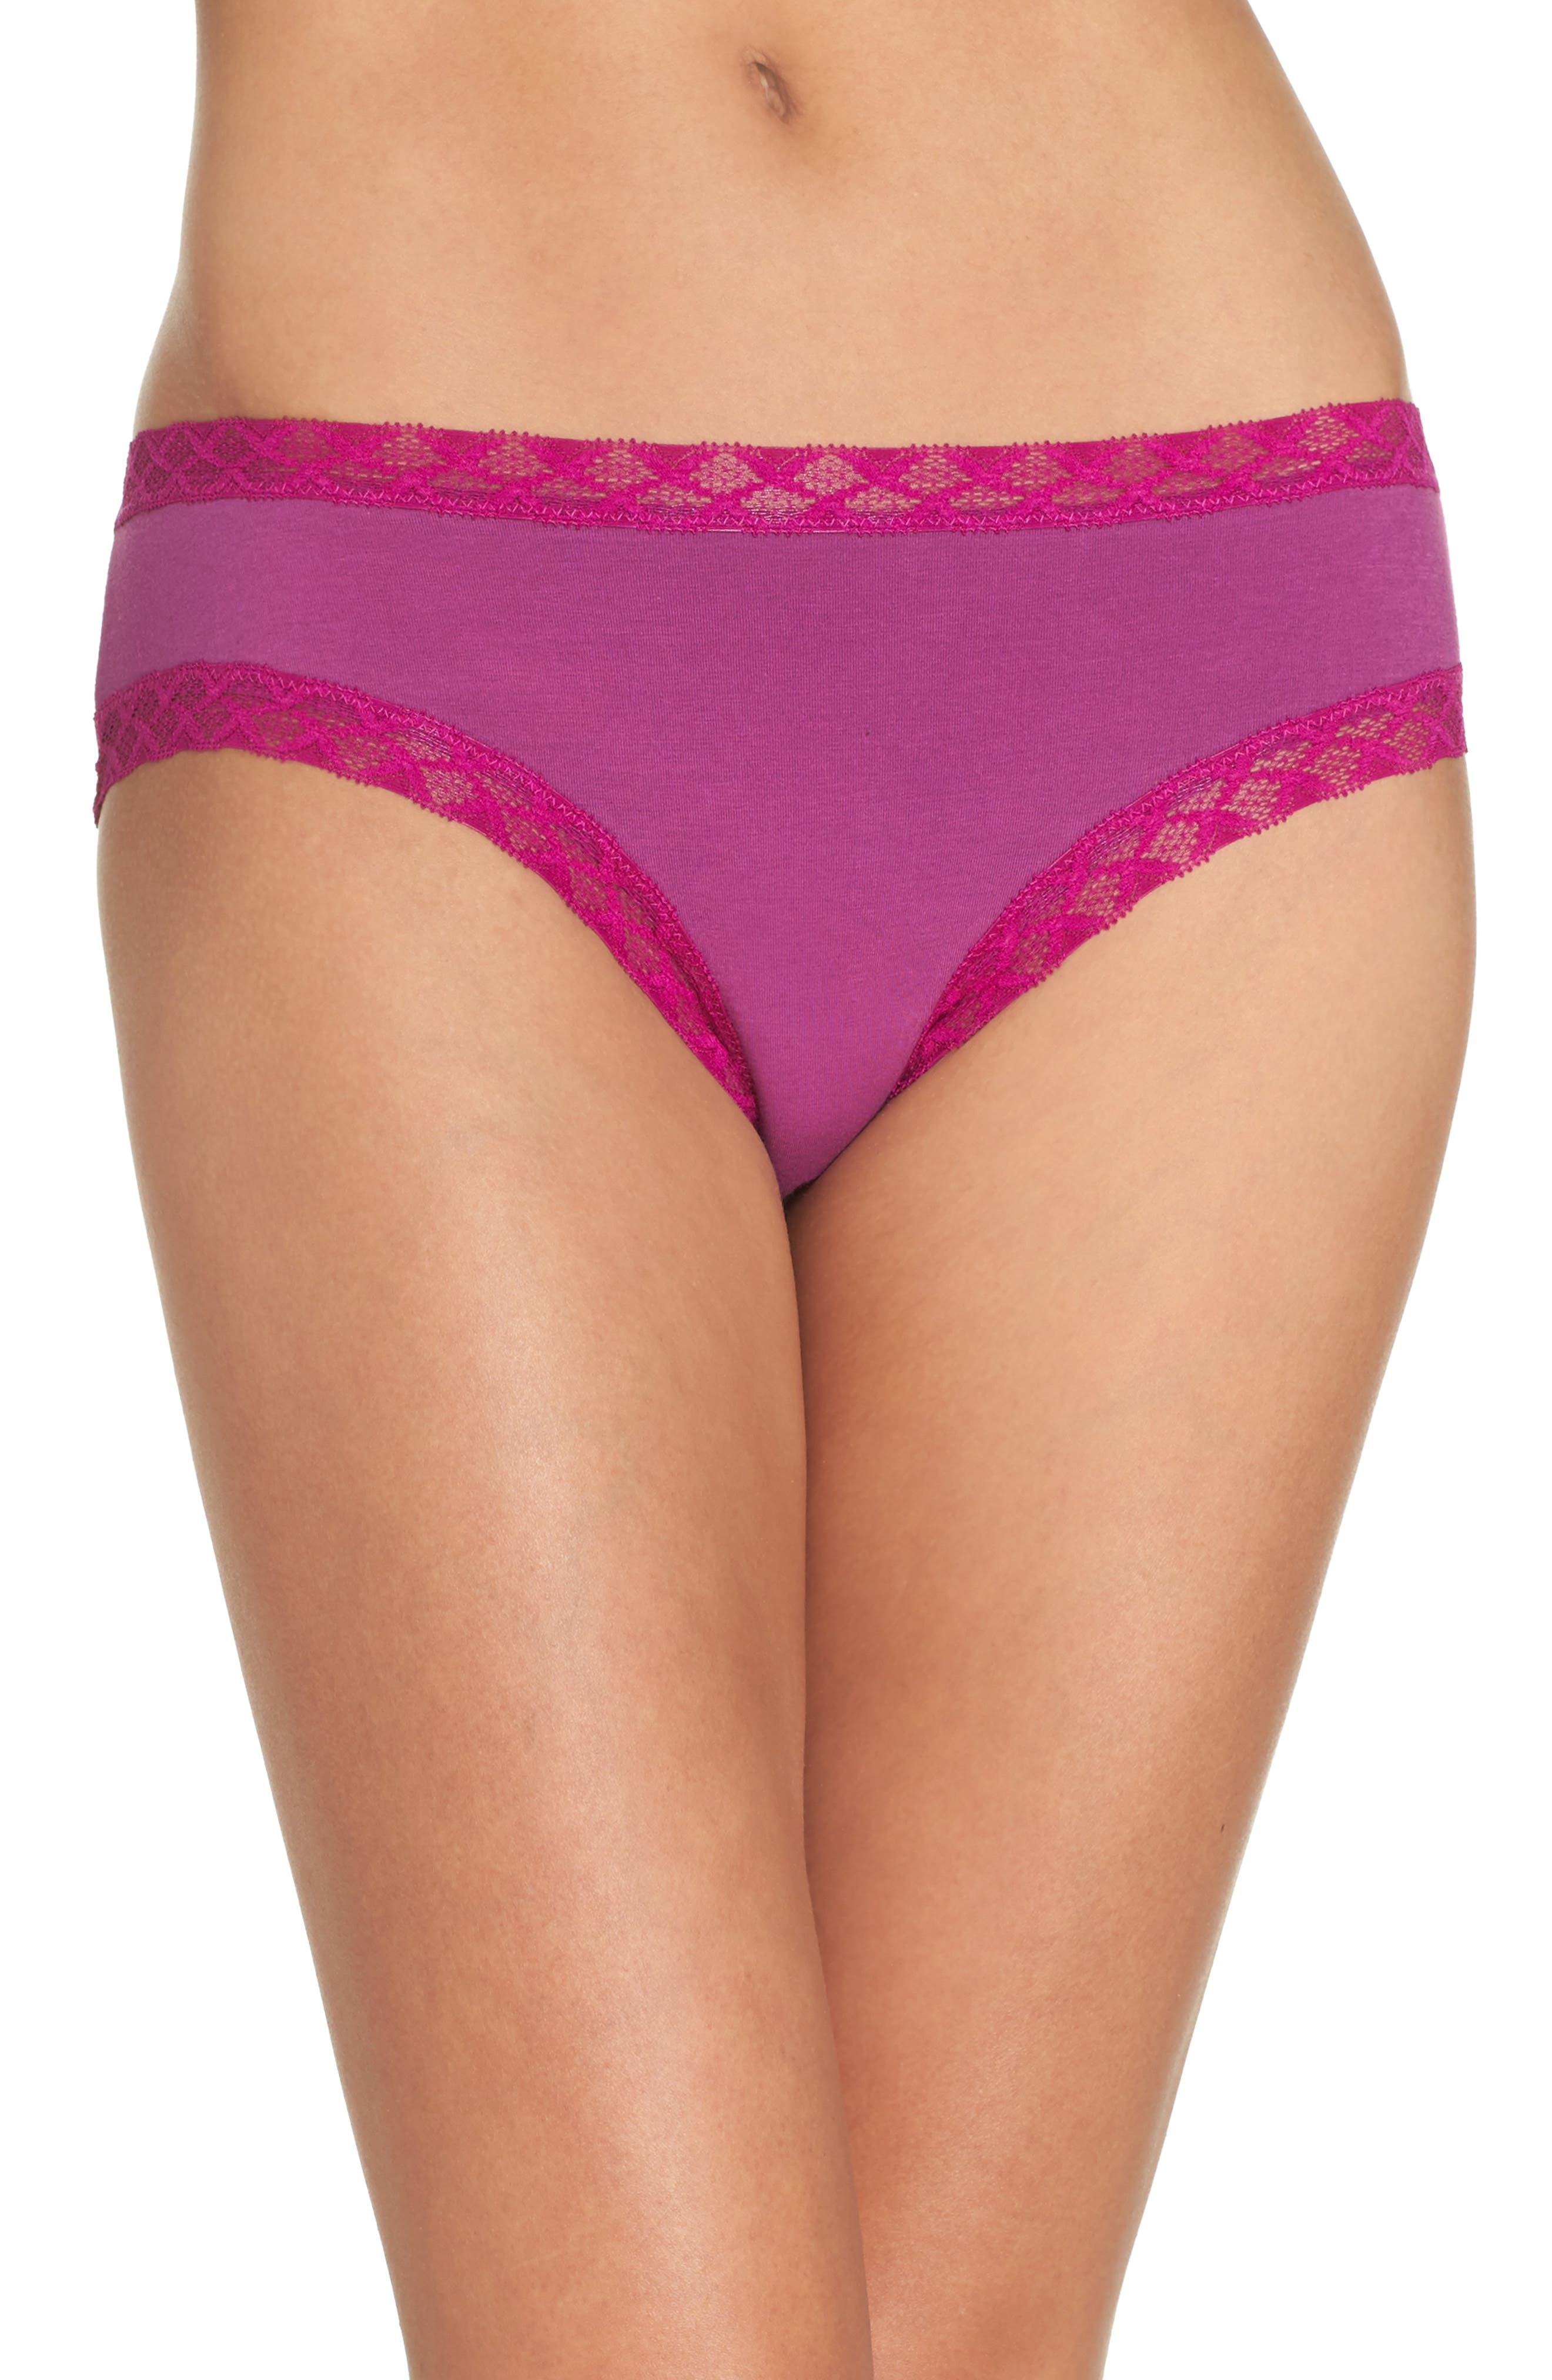 Main Image - Natori Bliss Cotton Girl Briefs (3 for $36)